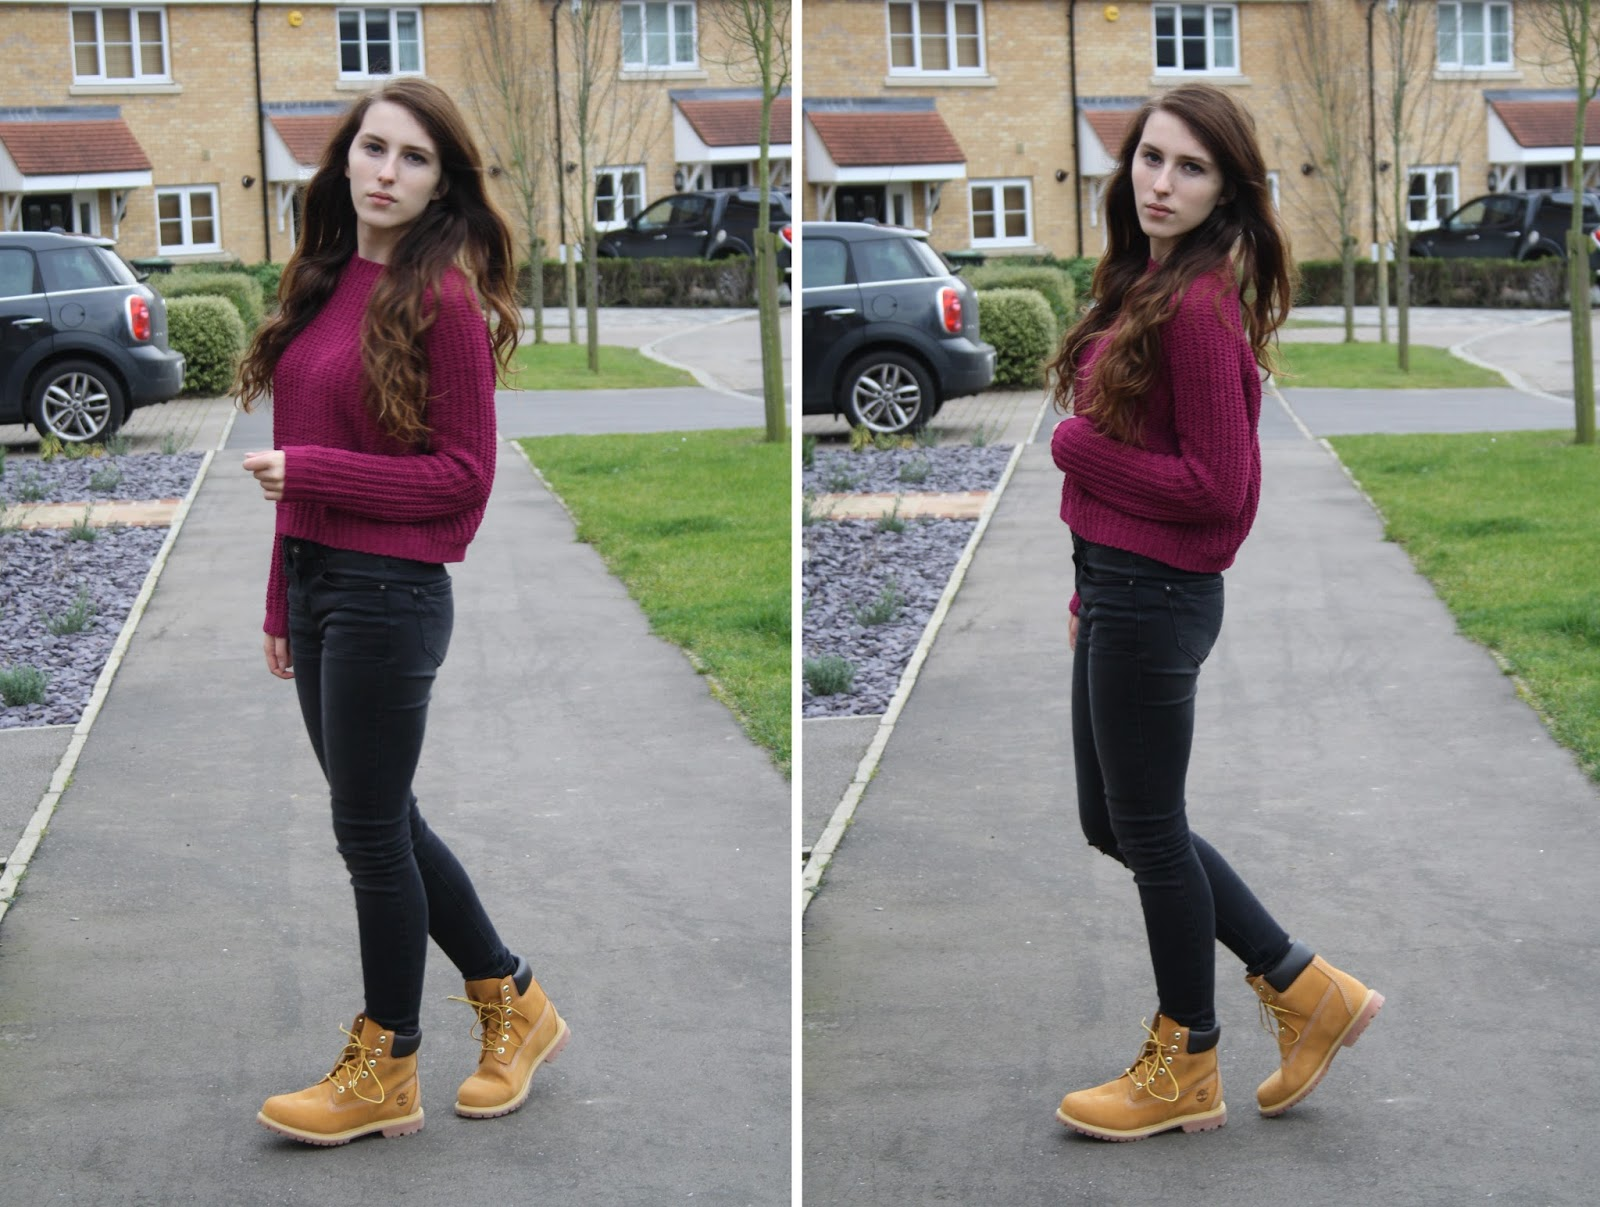 Timberland Boots For Women Outfits With Jeans greenboy.co.uk 856dff7a3